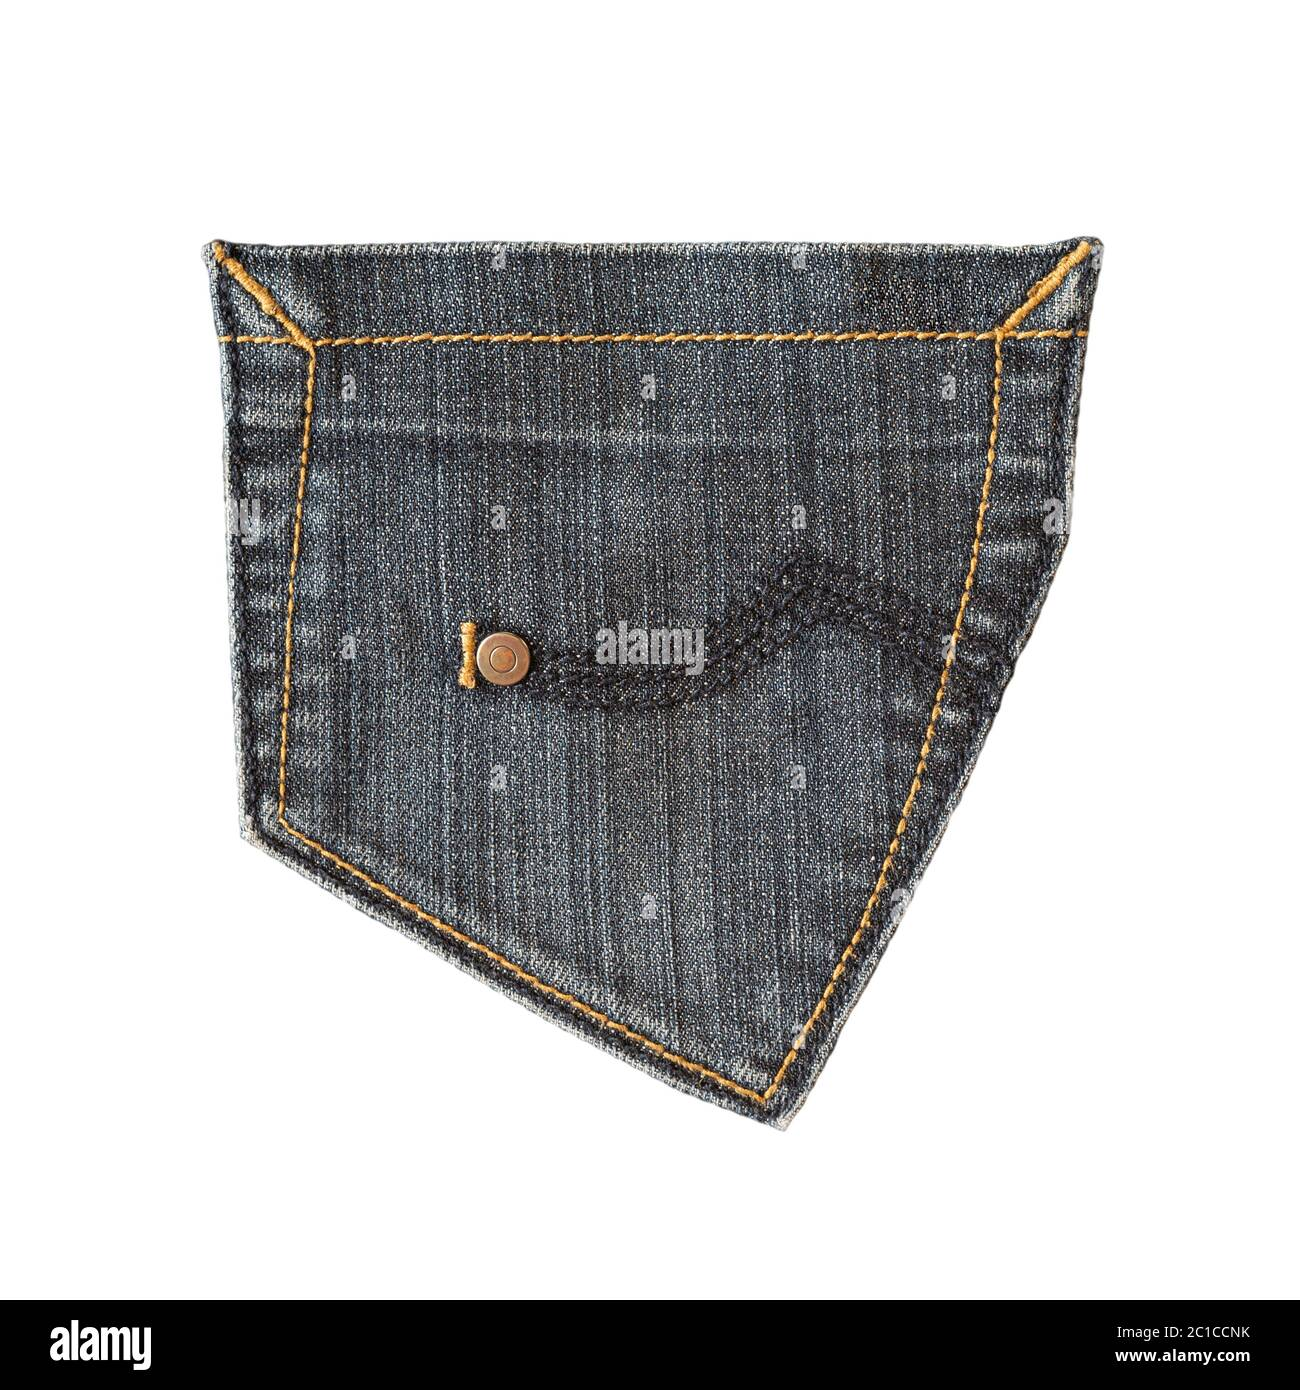 Blue Jeans Back Pocket With Stitches And Rivet Isolated On White Background Denim Fashion Pocket Design Closeup Stock Photo Alamy,Modern Townhouse Interior Design Philippines